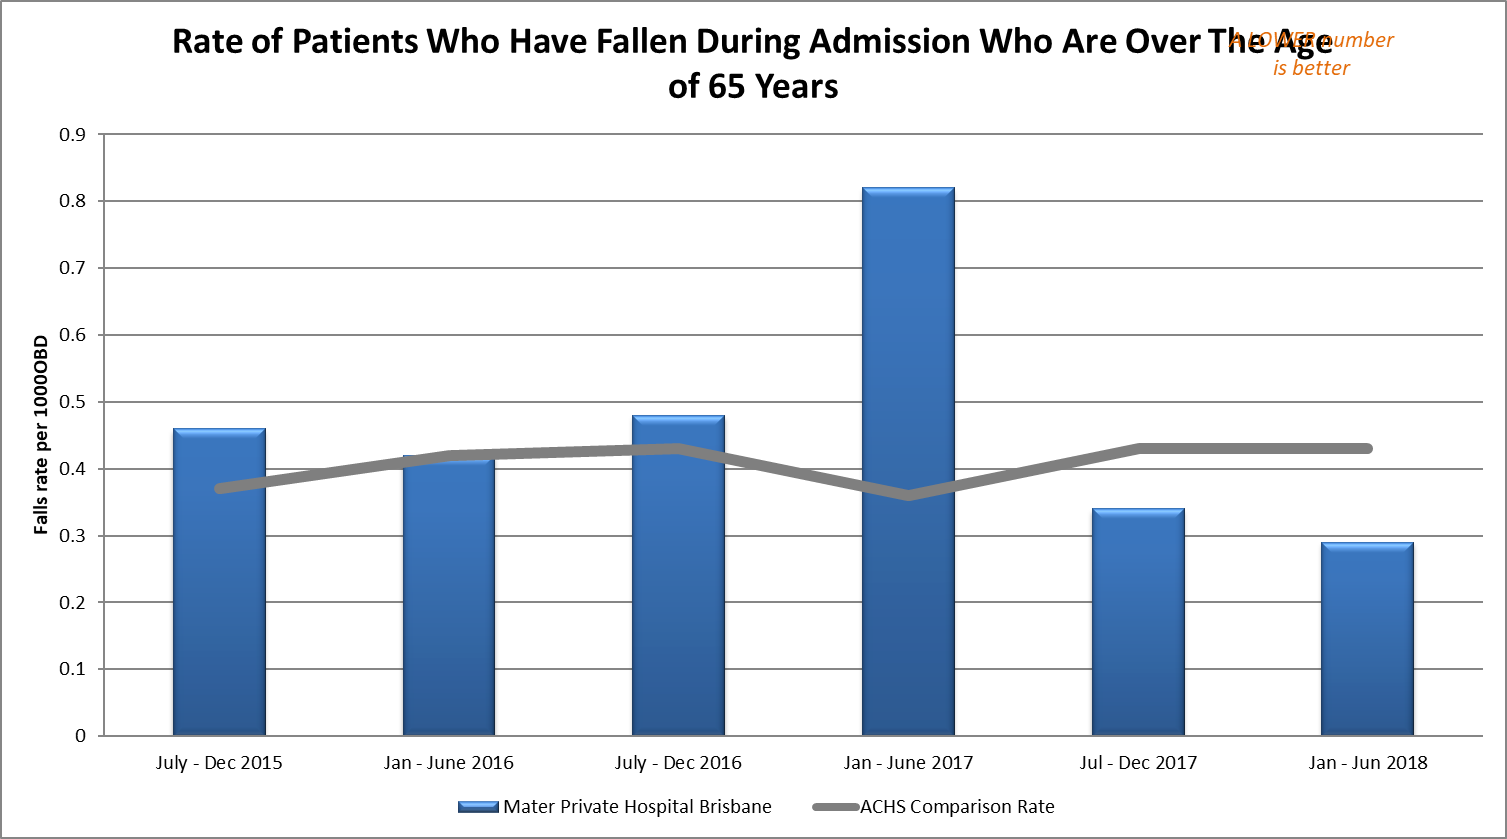 Patient Falls (Patients Over 65 Years)